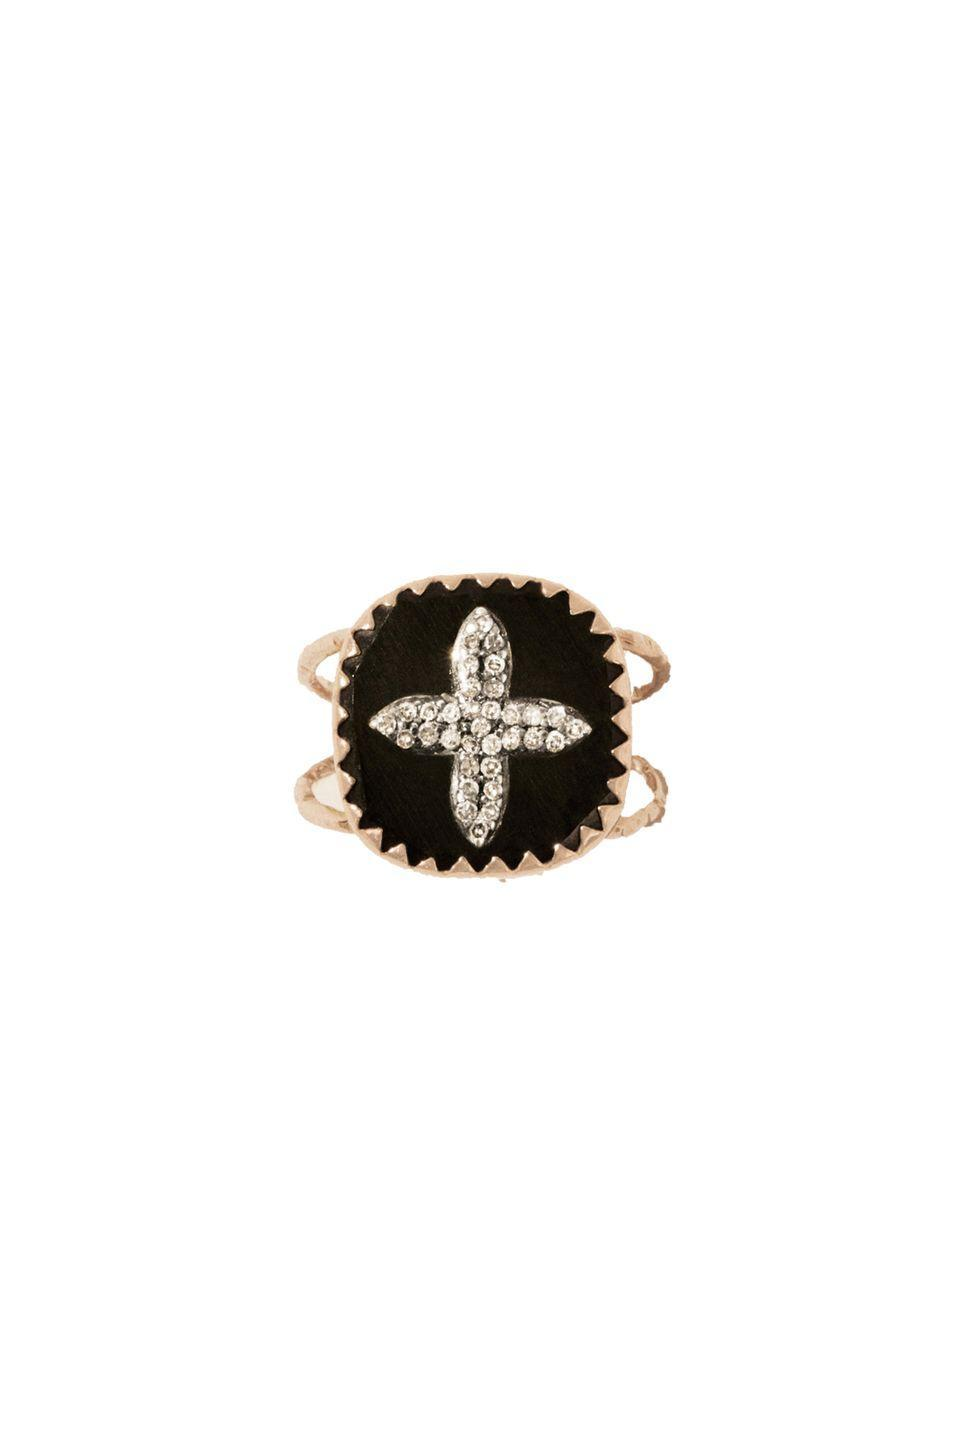 """<p>Gold and diamond ring, about £518, <a href=""""https://pascalemonvoisin.com/en/rings/211-2263-bowie-n2-horn-diamond.html#/37-taille-6"""" rel=""""nofollow noopener"""" target=""""_blank"""" data-ylk=""""slk:Pascale Monvoisin"""" class=""""link rapid-noclick-resp"""">Pascale Monvoisin</a><br><br><a class=""""link rapid-noclick-resp"""" href=""""https://pascalemonvoisin.com/en/rings/211-2263-bowie-n2-horn-diamond.html#/37-taille-6"""" rel=""""nofollow noopener"""" target=""""_blank"""" data-ylk=""""slk:SHOP NOW"""">SHOP NOW</a></p>"""